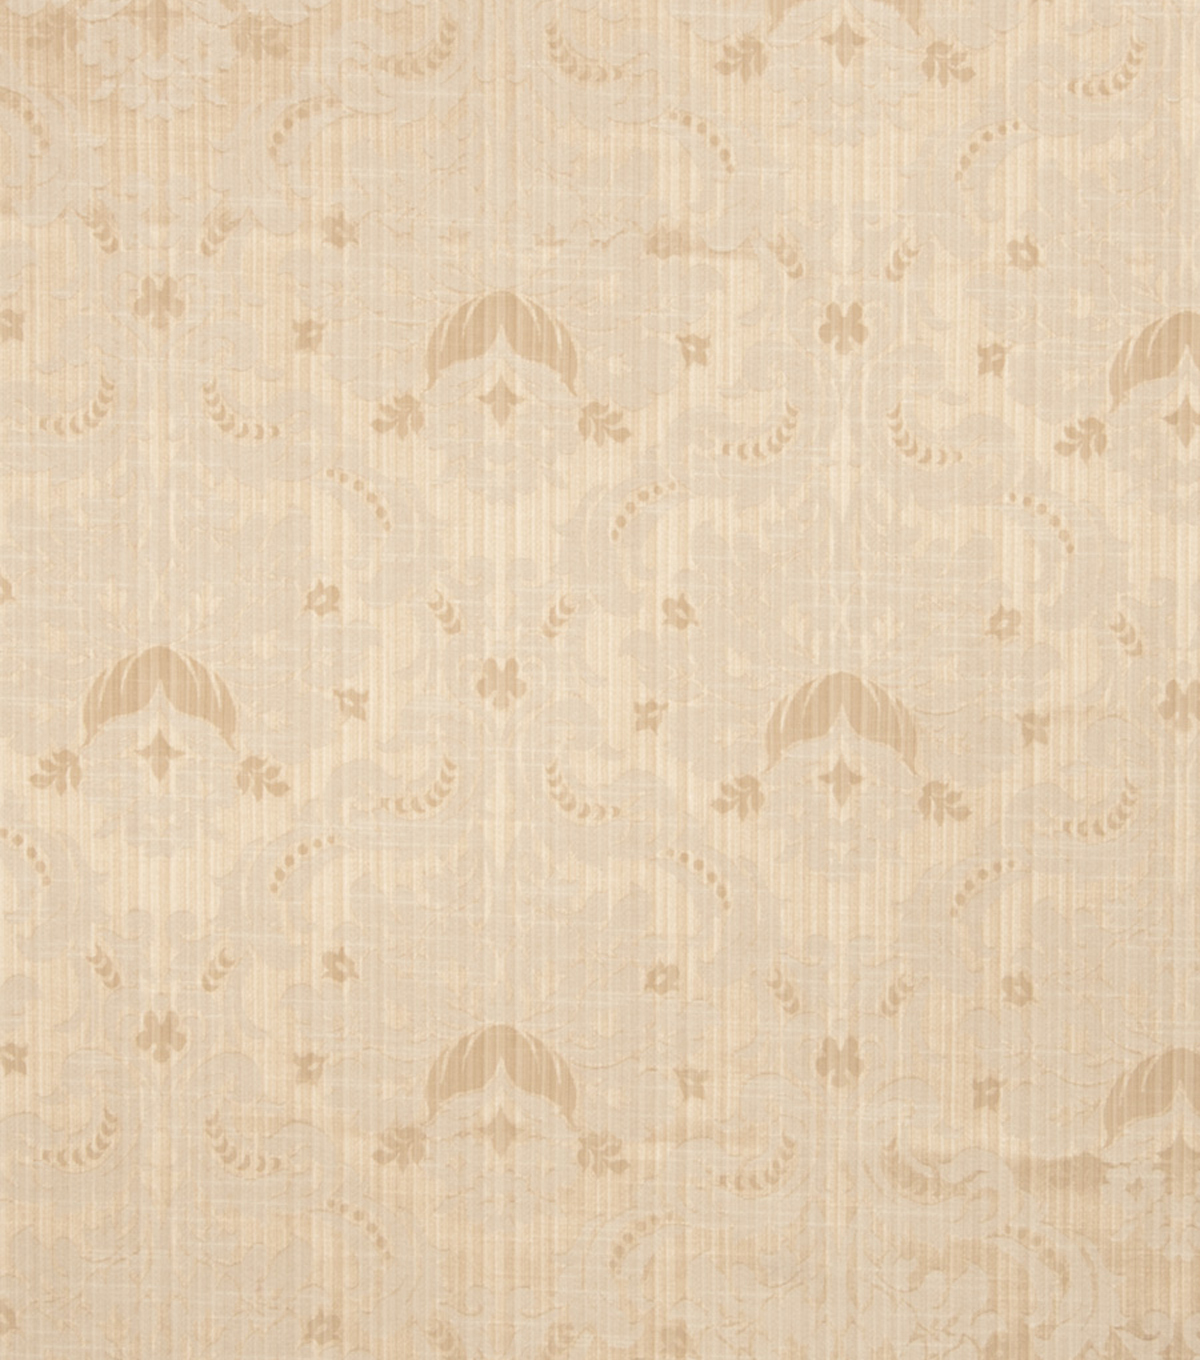 Home Decor 8\u0022x8\u0022 Fabric Swatch-Eaton Square Hobby /  Honey